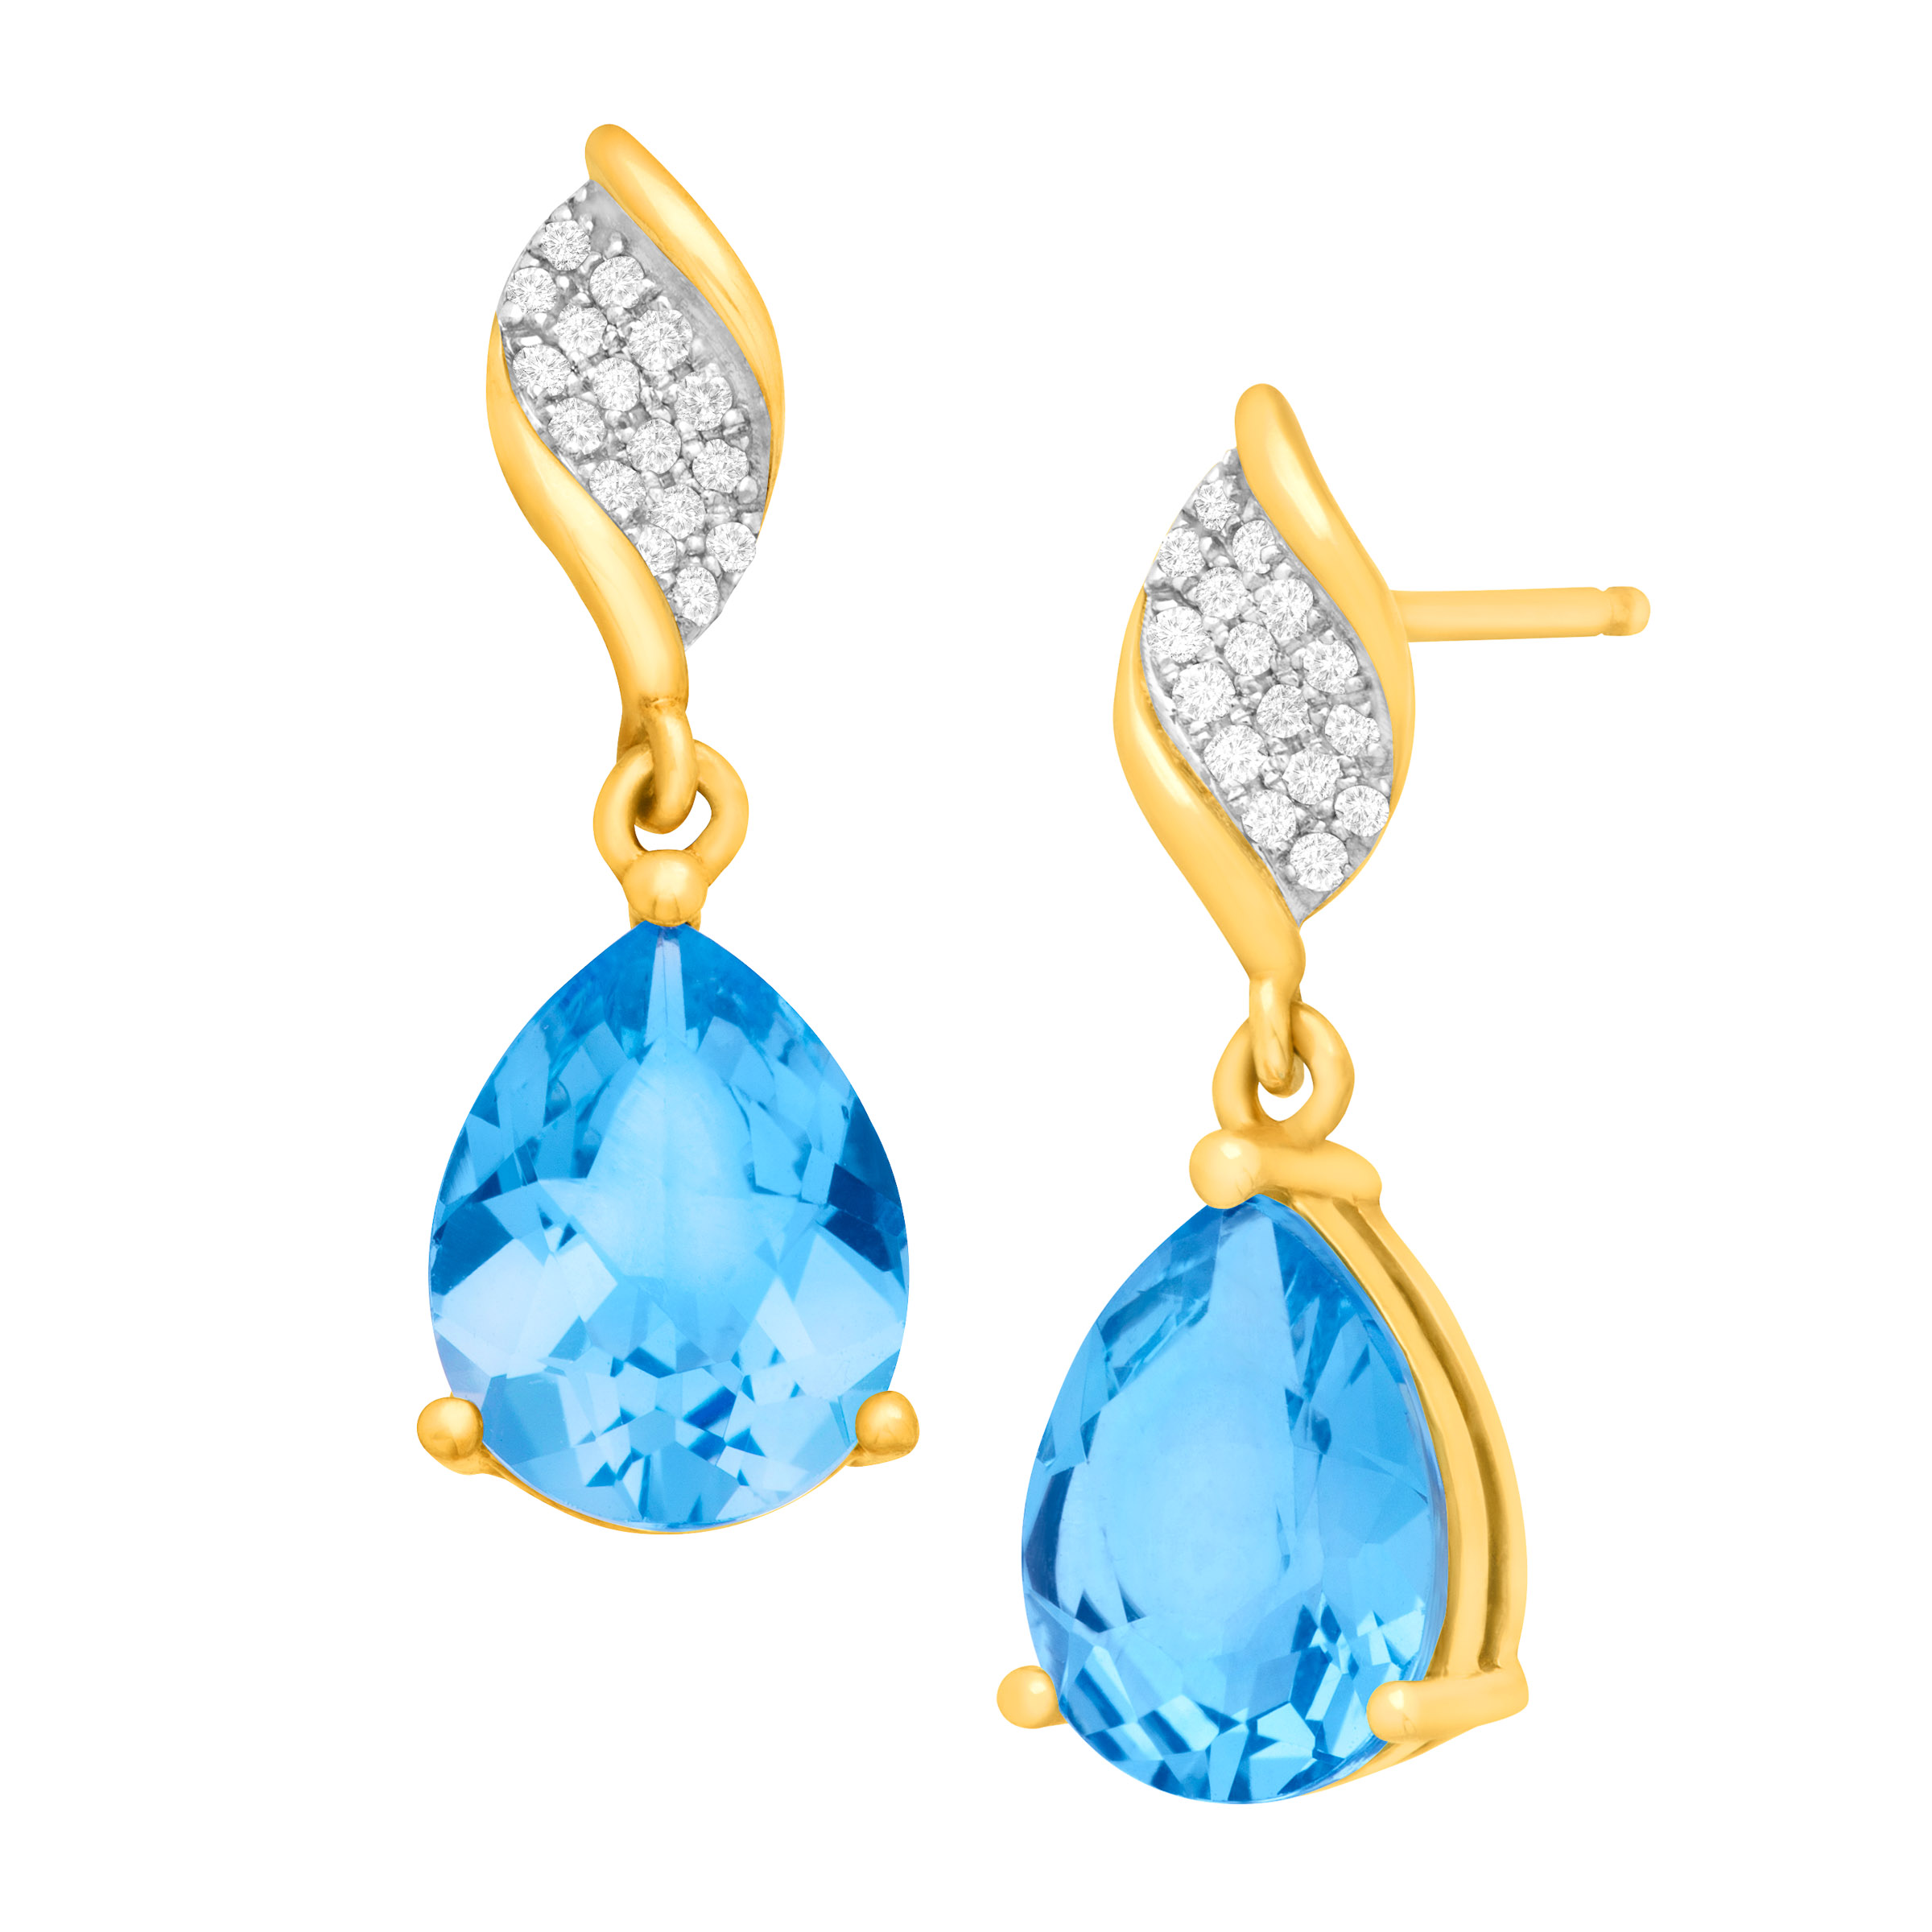 4 1 2 ct Pear-Cut Natural Swiss Blue Topaz Drop Earrings with Diamonds in 10kt Yellow Gold by Richline Group